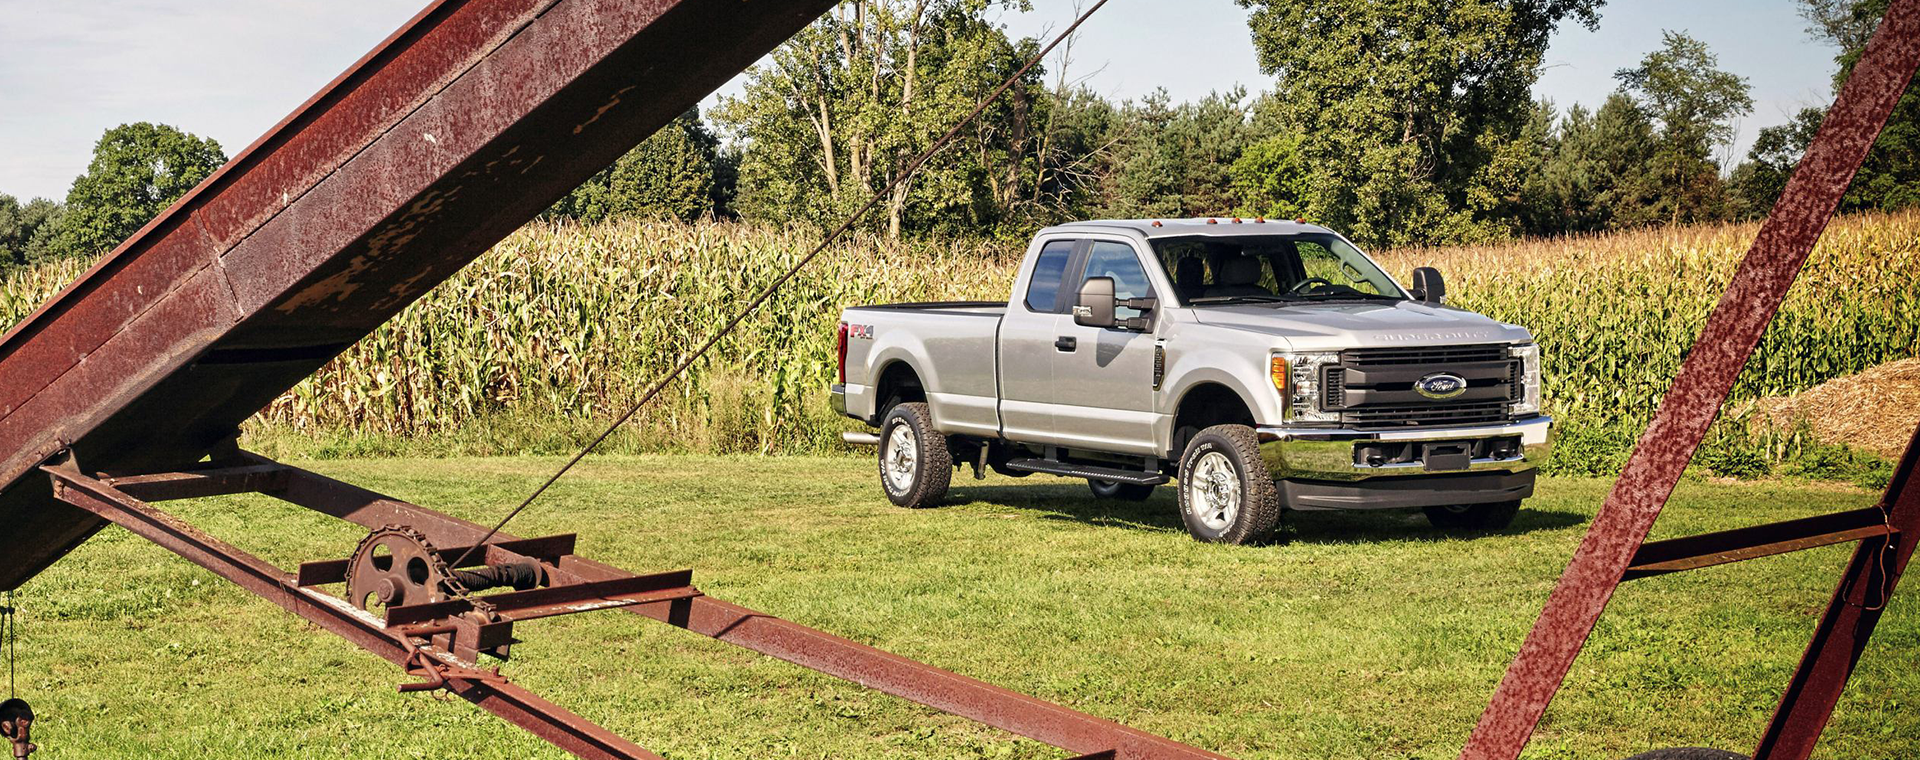 New F-250 inventory at Quirk Ford